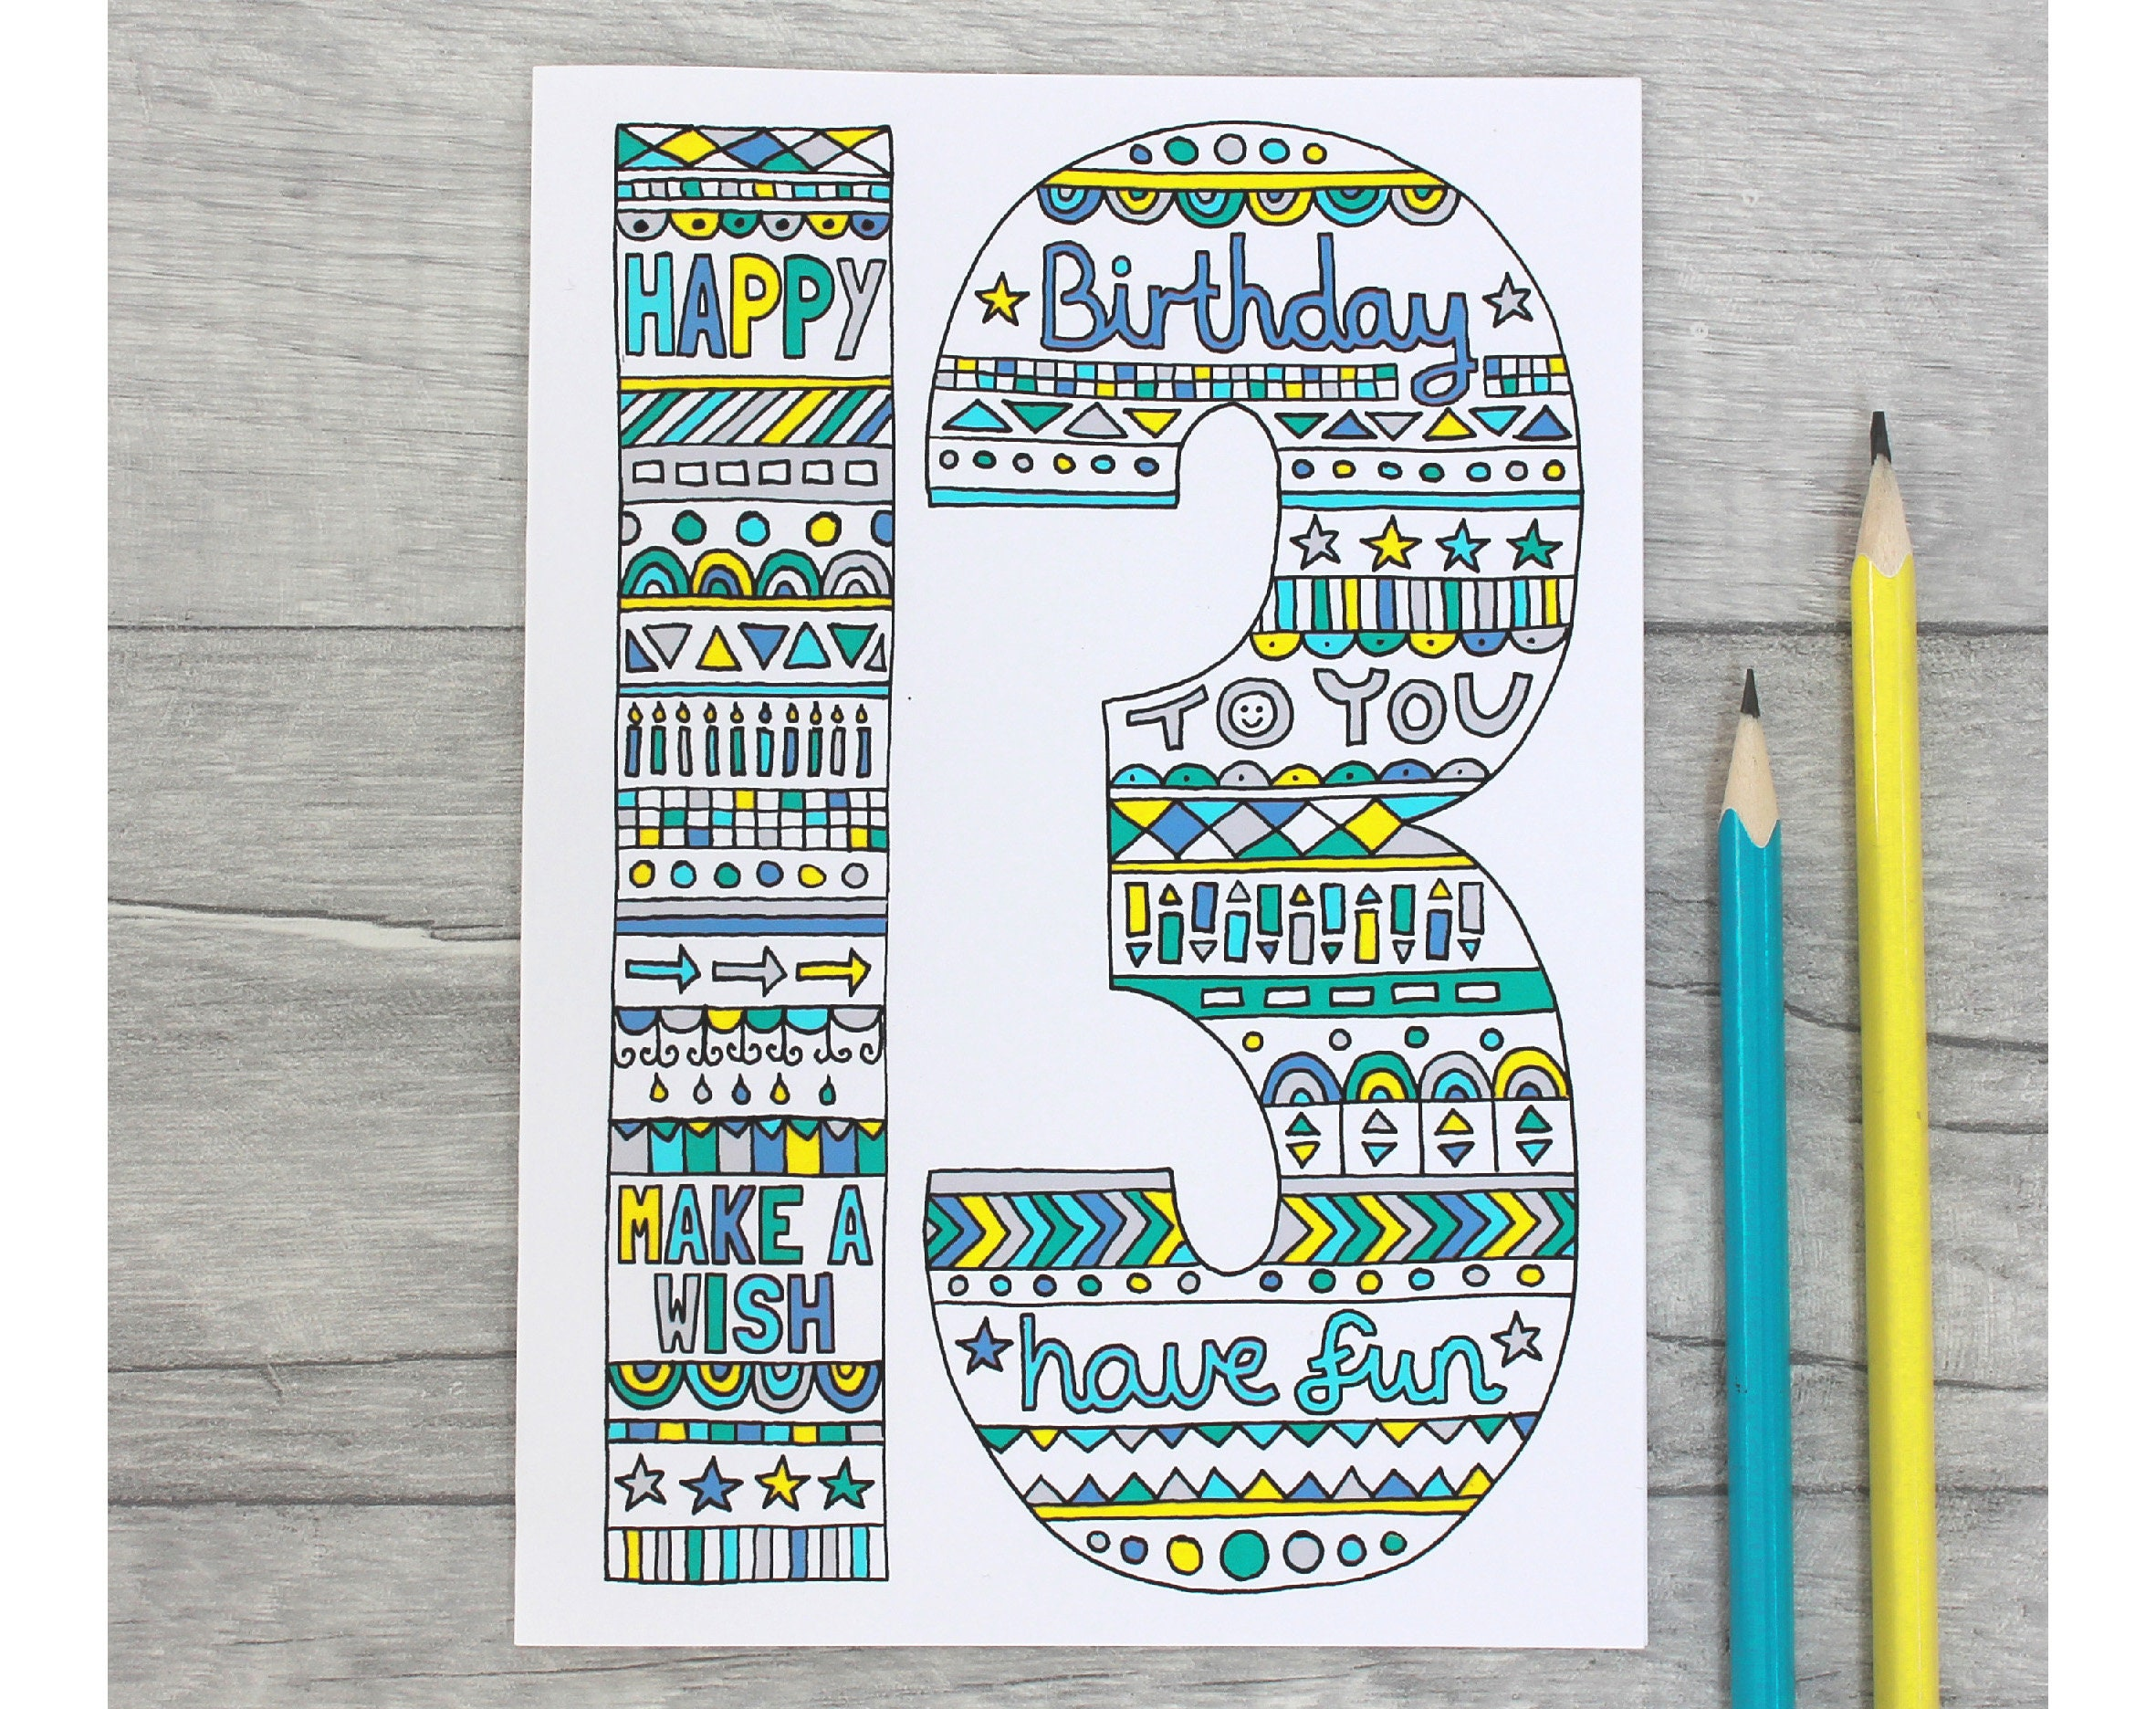 Details about  /Personalised Card Any Number Name 10th Birthday Word Art For Boy 11th 12th 13th